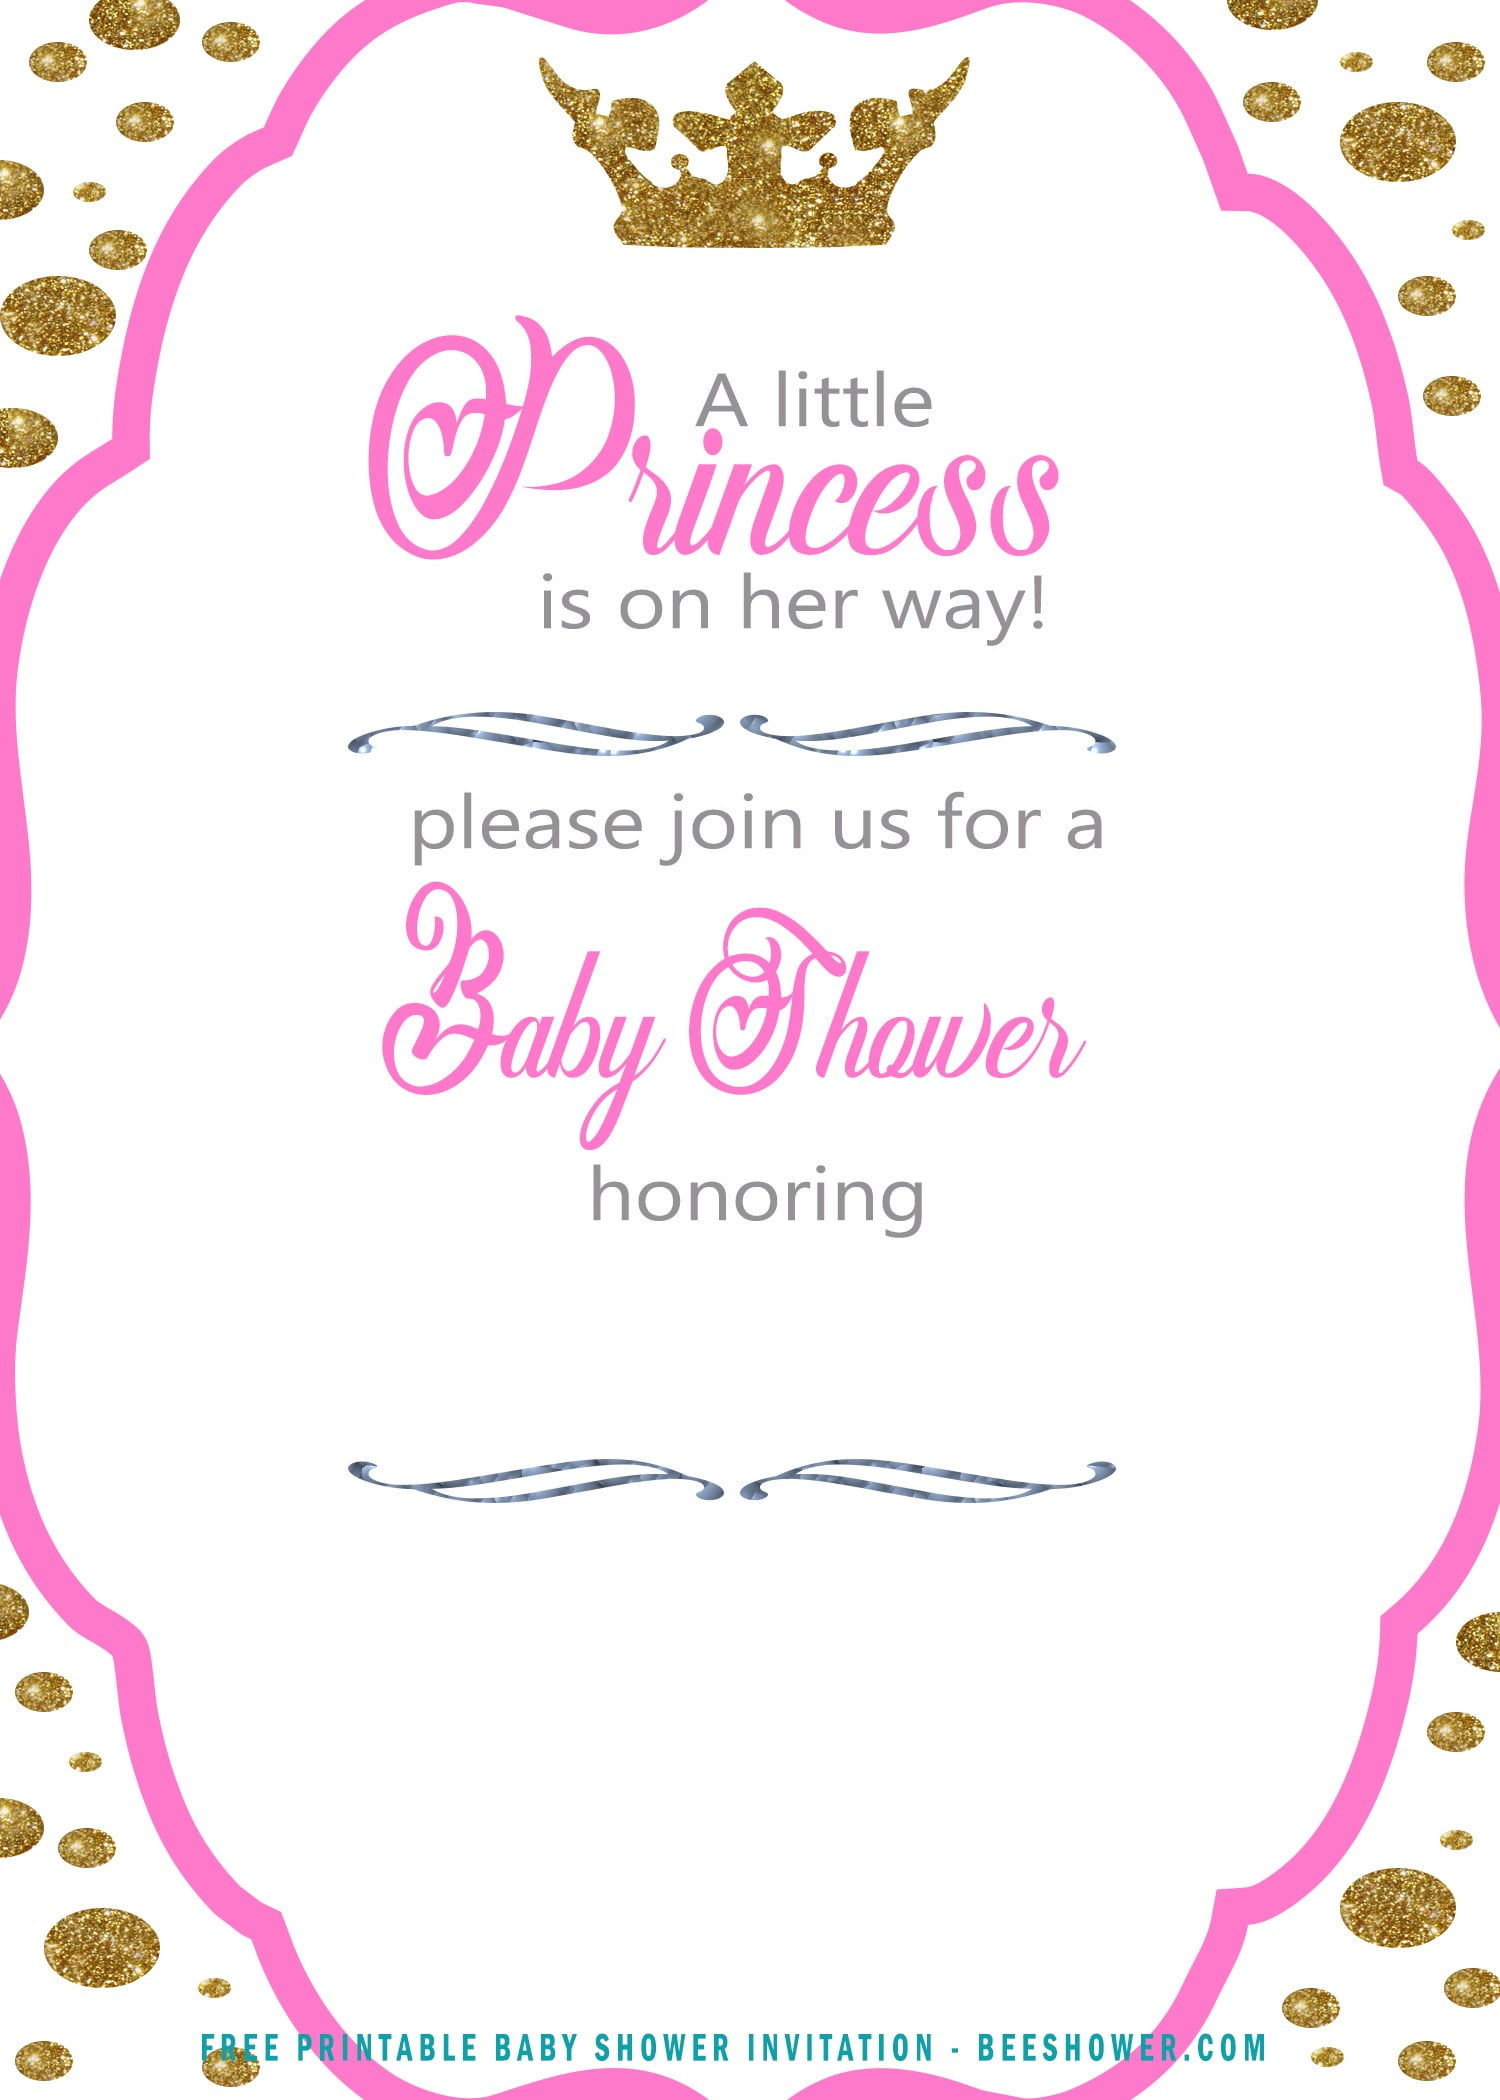 Free Polka Dot Princess Baby Shower Invitation Free